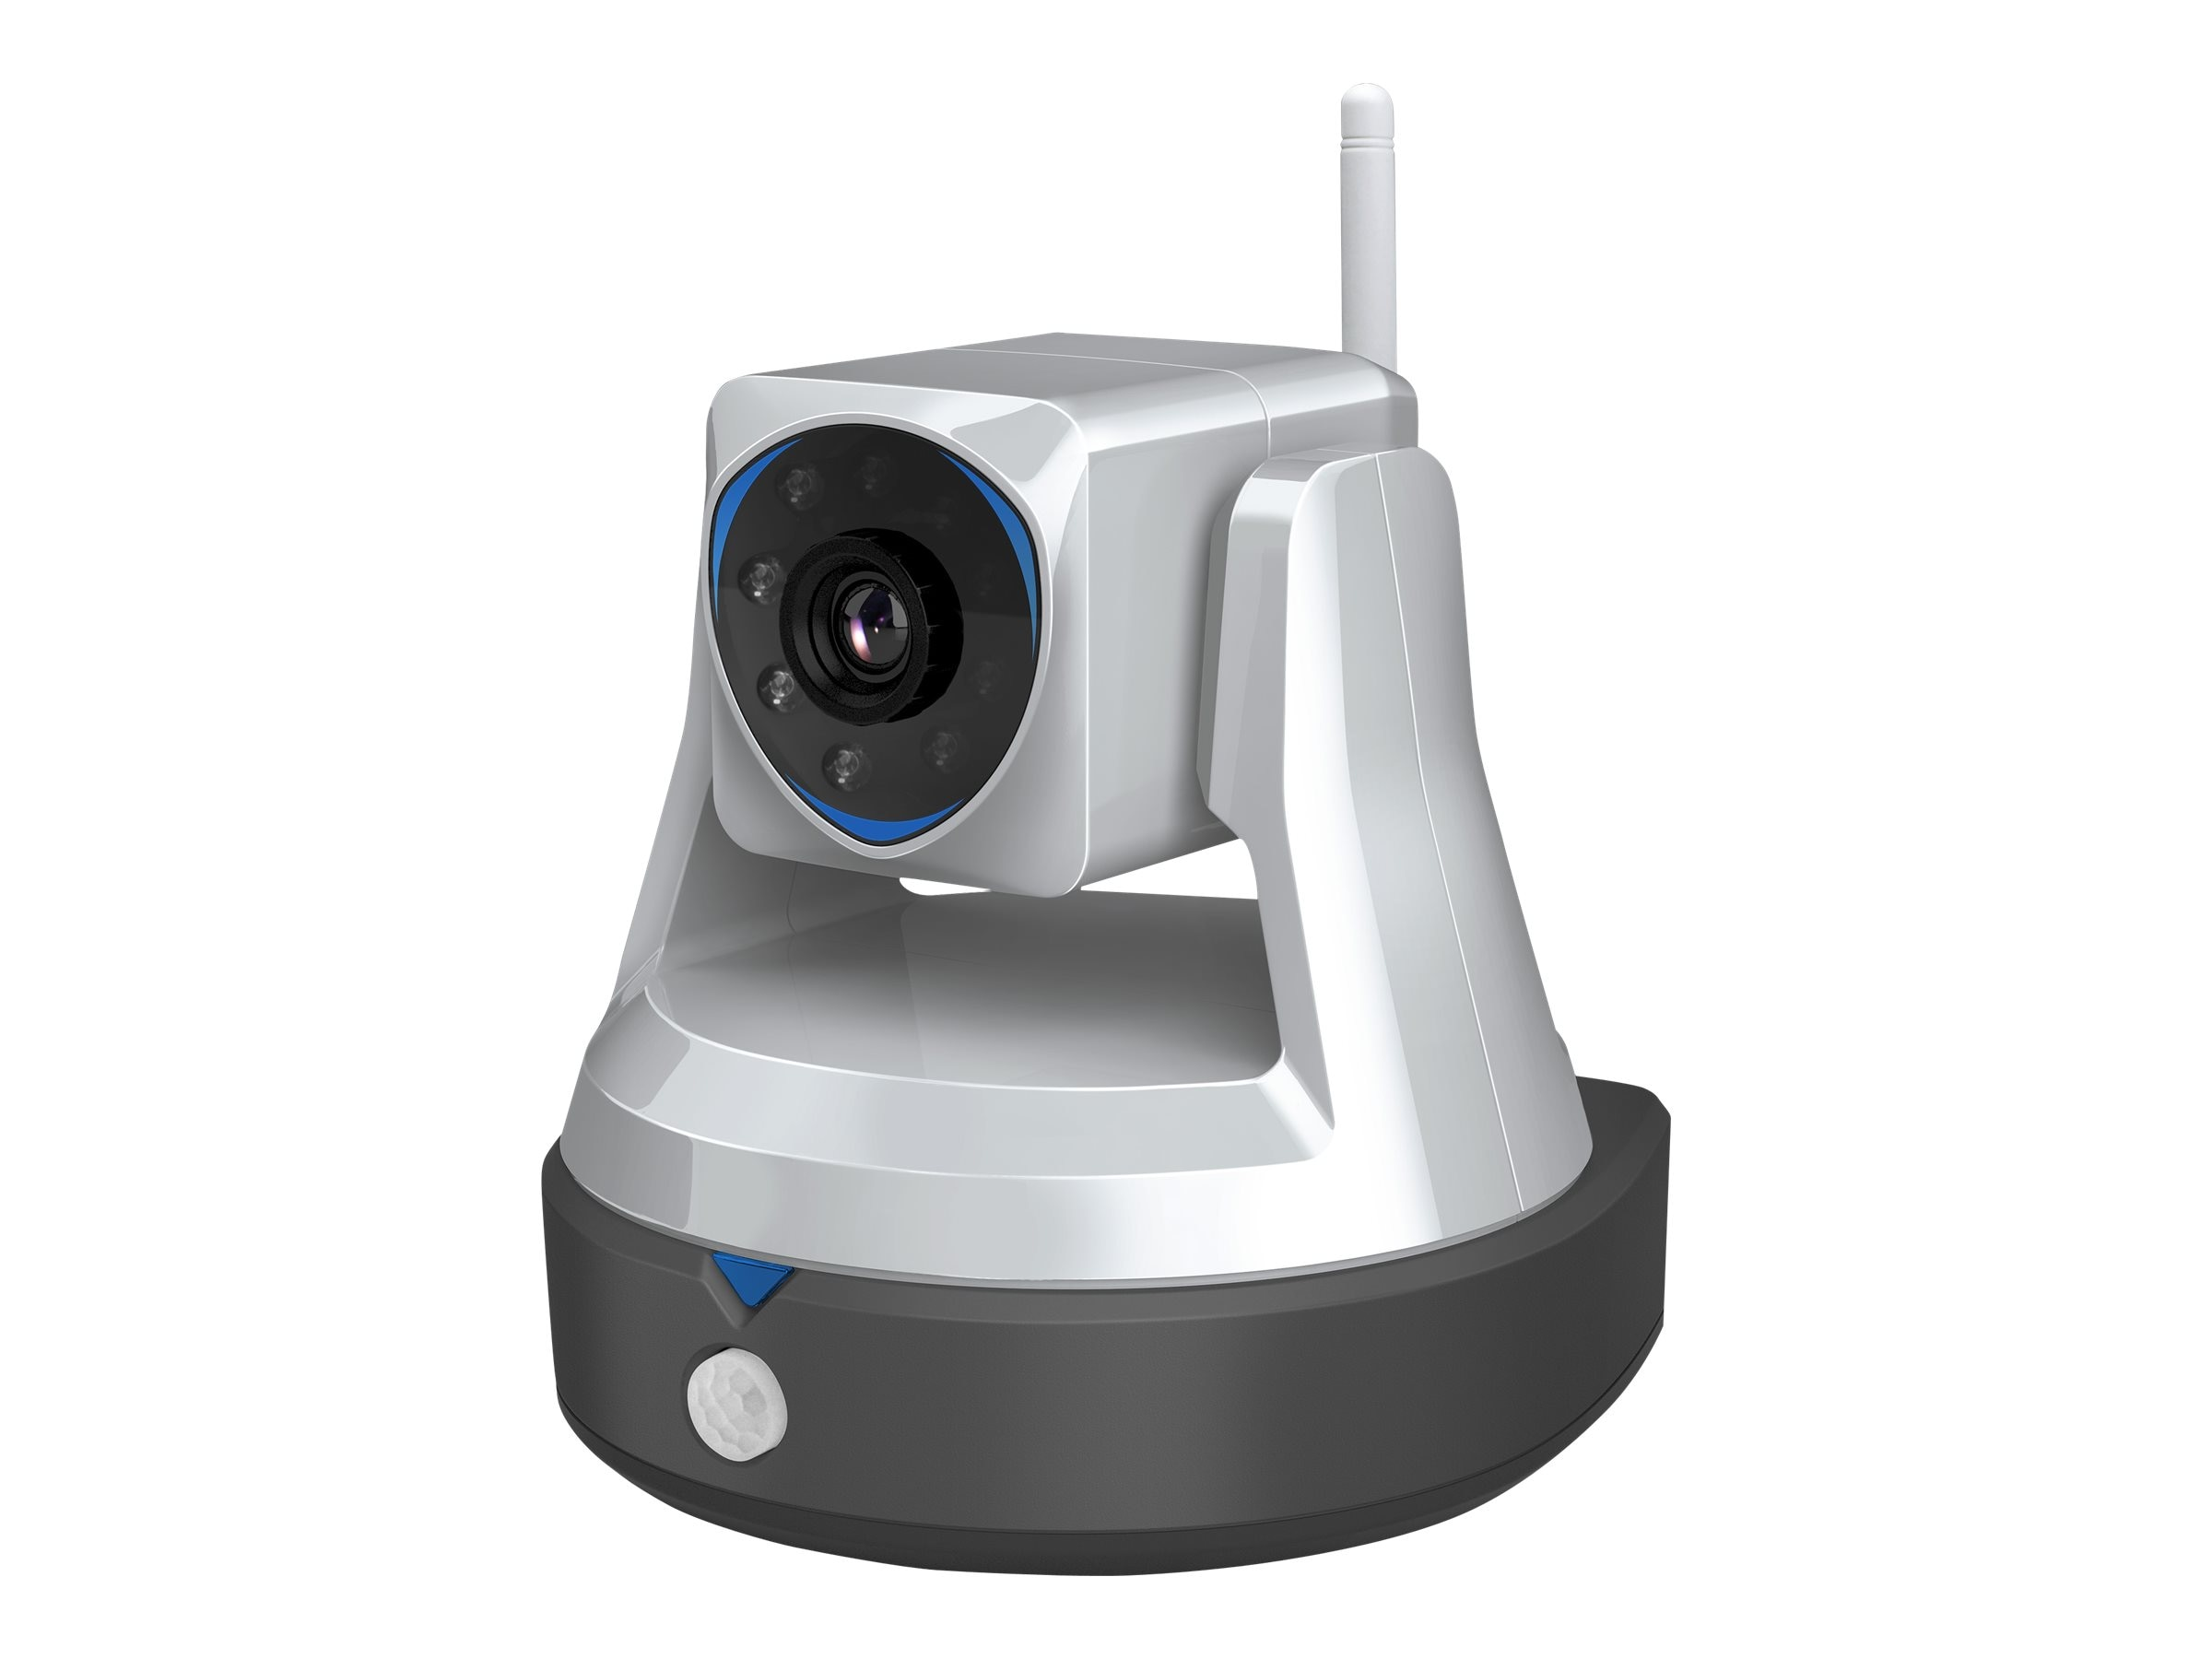 Swann HD Pan and Tilt Wi-Fi Security Camera with Smart Alerts